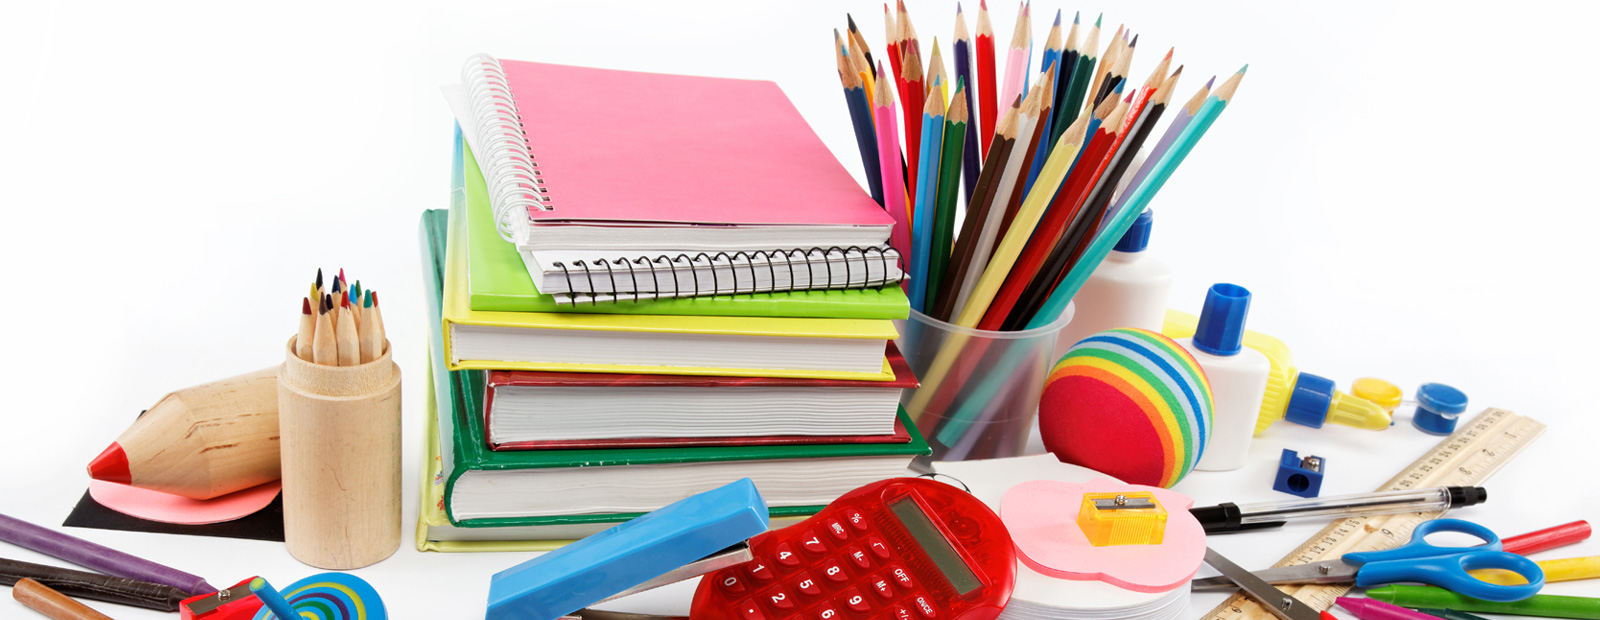 School Items And Office Stationeries Supply